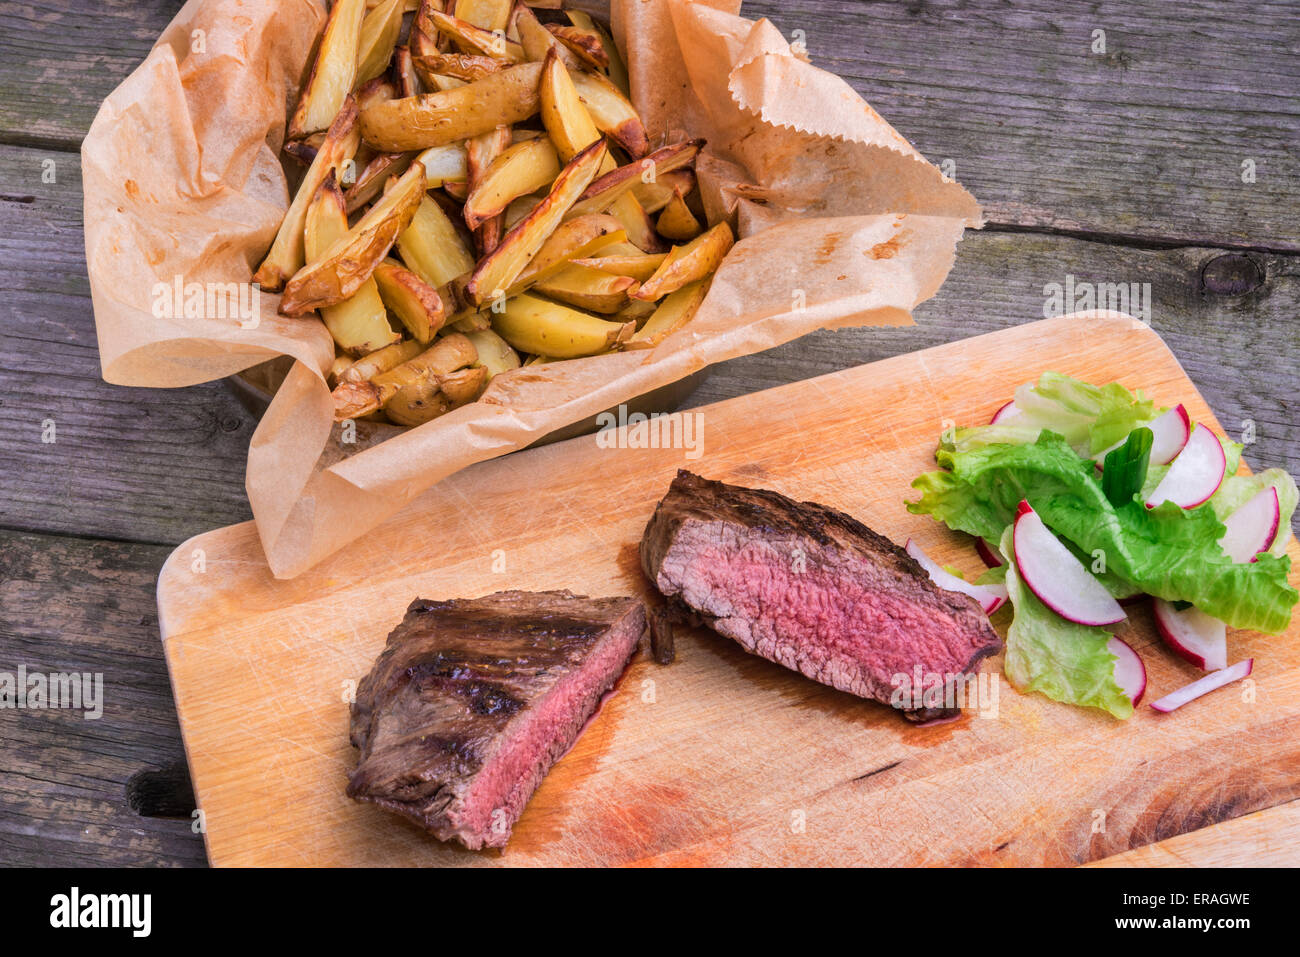 Medium rare grilled top rump steak seasoned with green pepper and thyme, served on a wooden board with rosemary Stock Photo